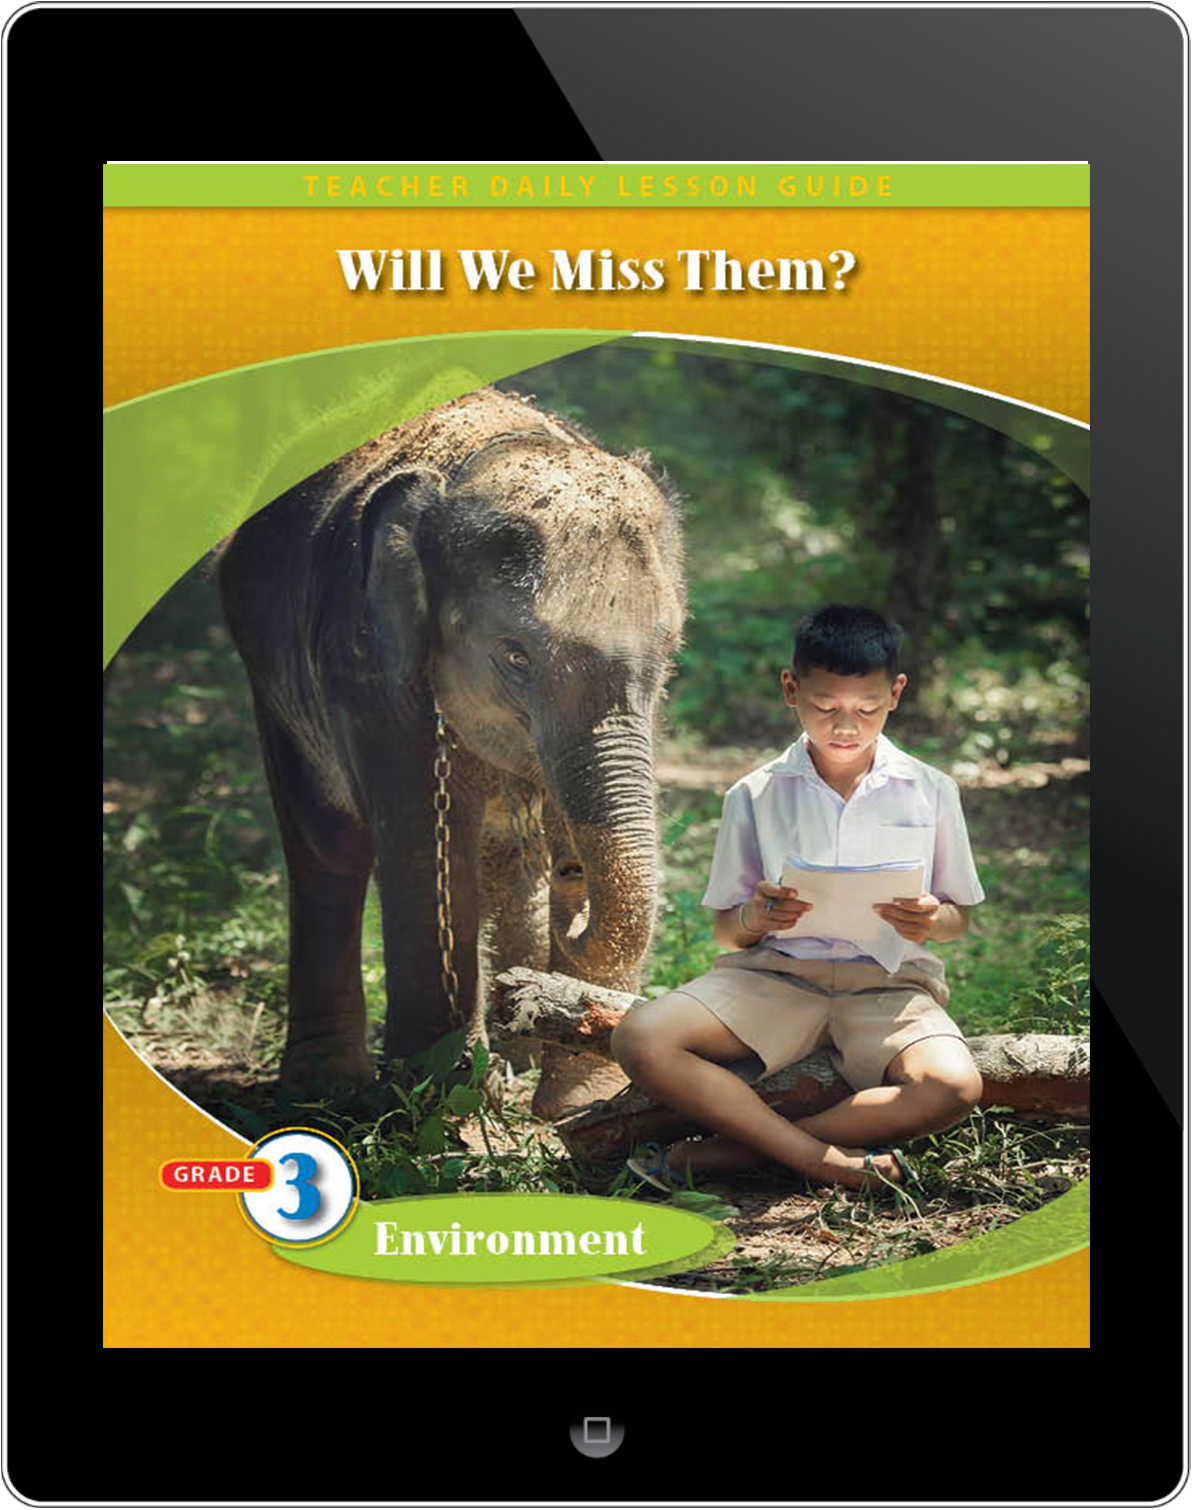 Pathways2.0 Grade 3 Environment Unit: Will We Miss Them? Endangered Species Daily Lesson Guide 5 Year License